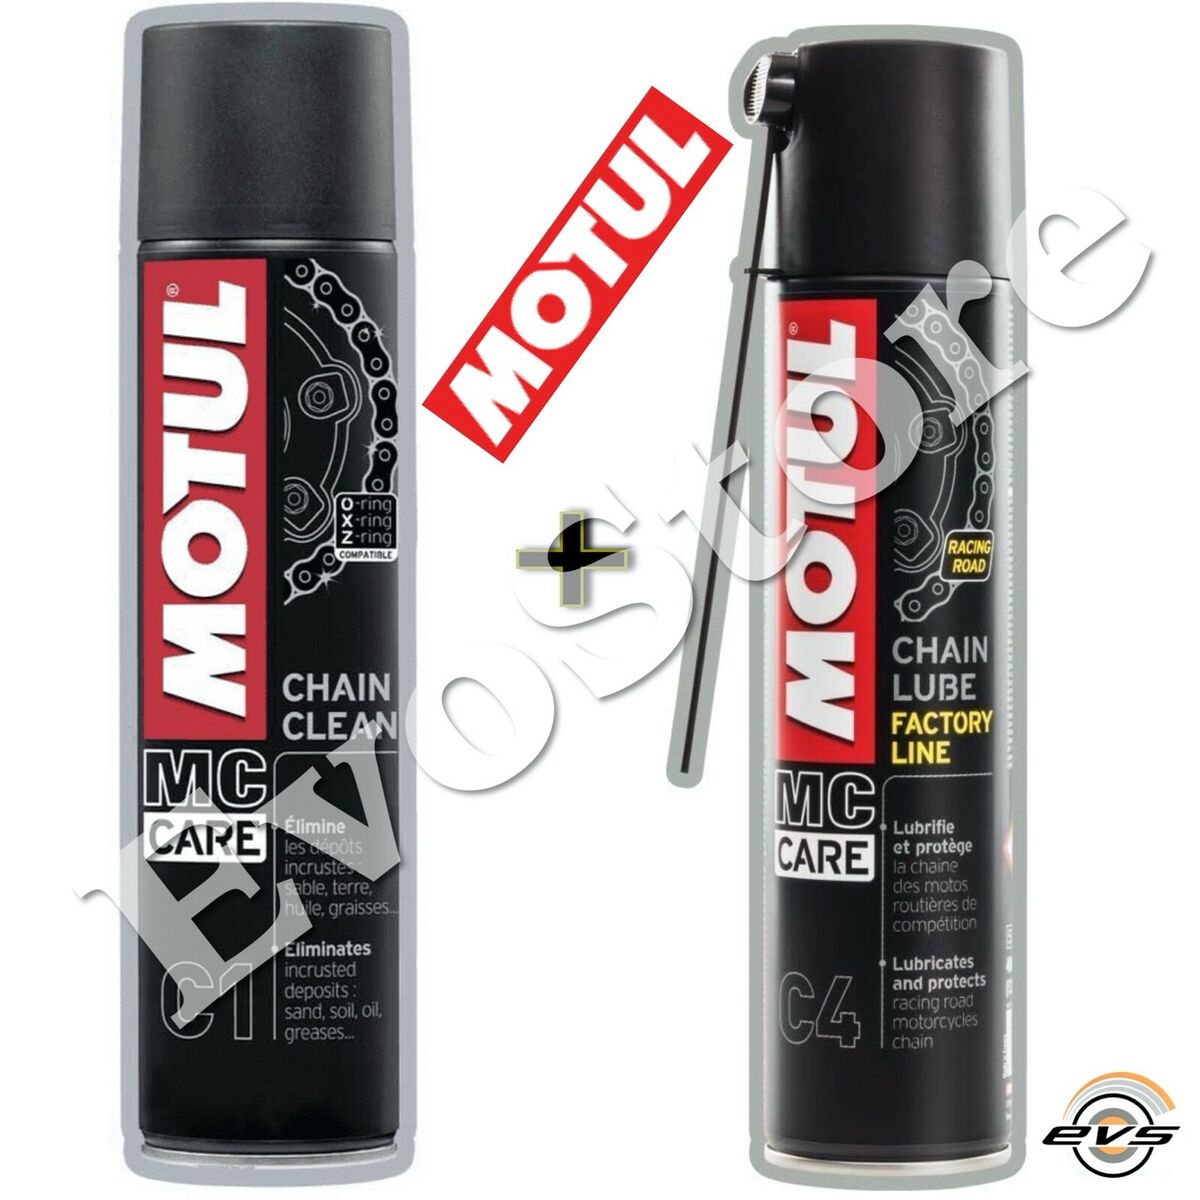 Kit pulizia catena moto strada motul c1 chain clean grasso spray c4 fl 2x400ml 